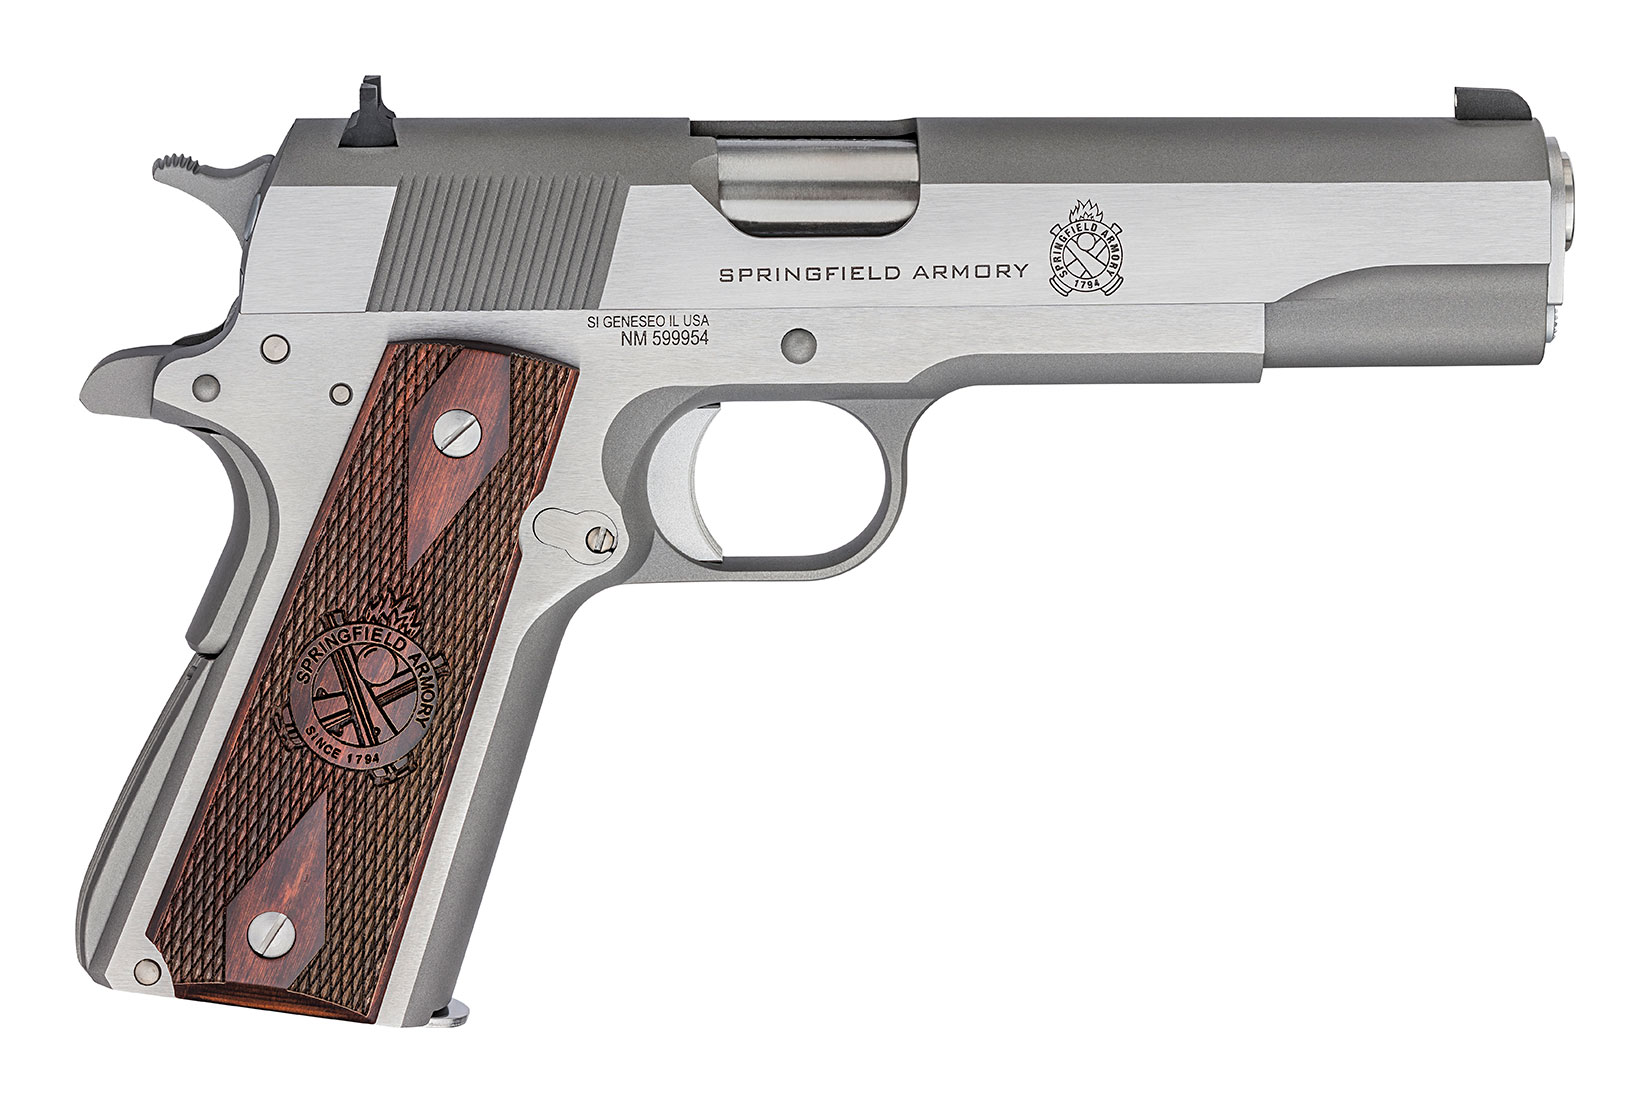 Springfield Armory Mil-Spec Stainless Steel 45 ACP